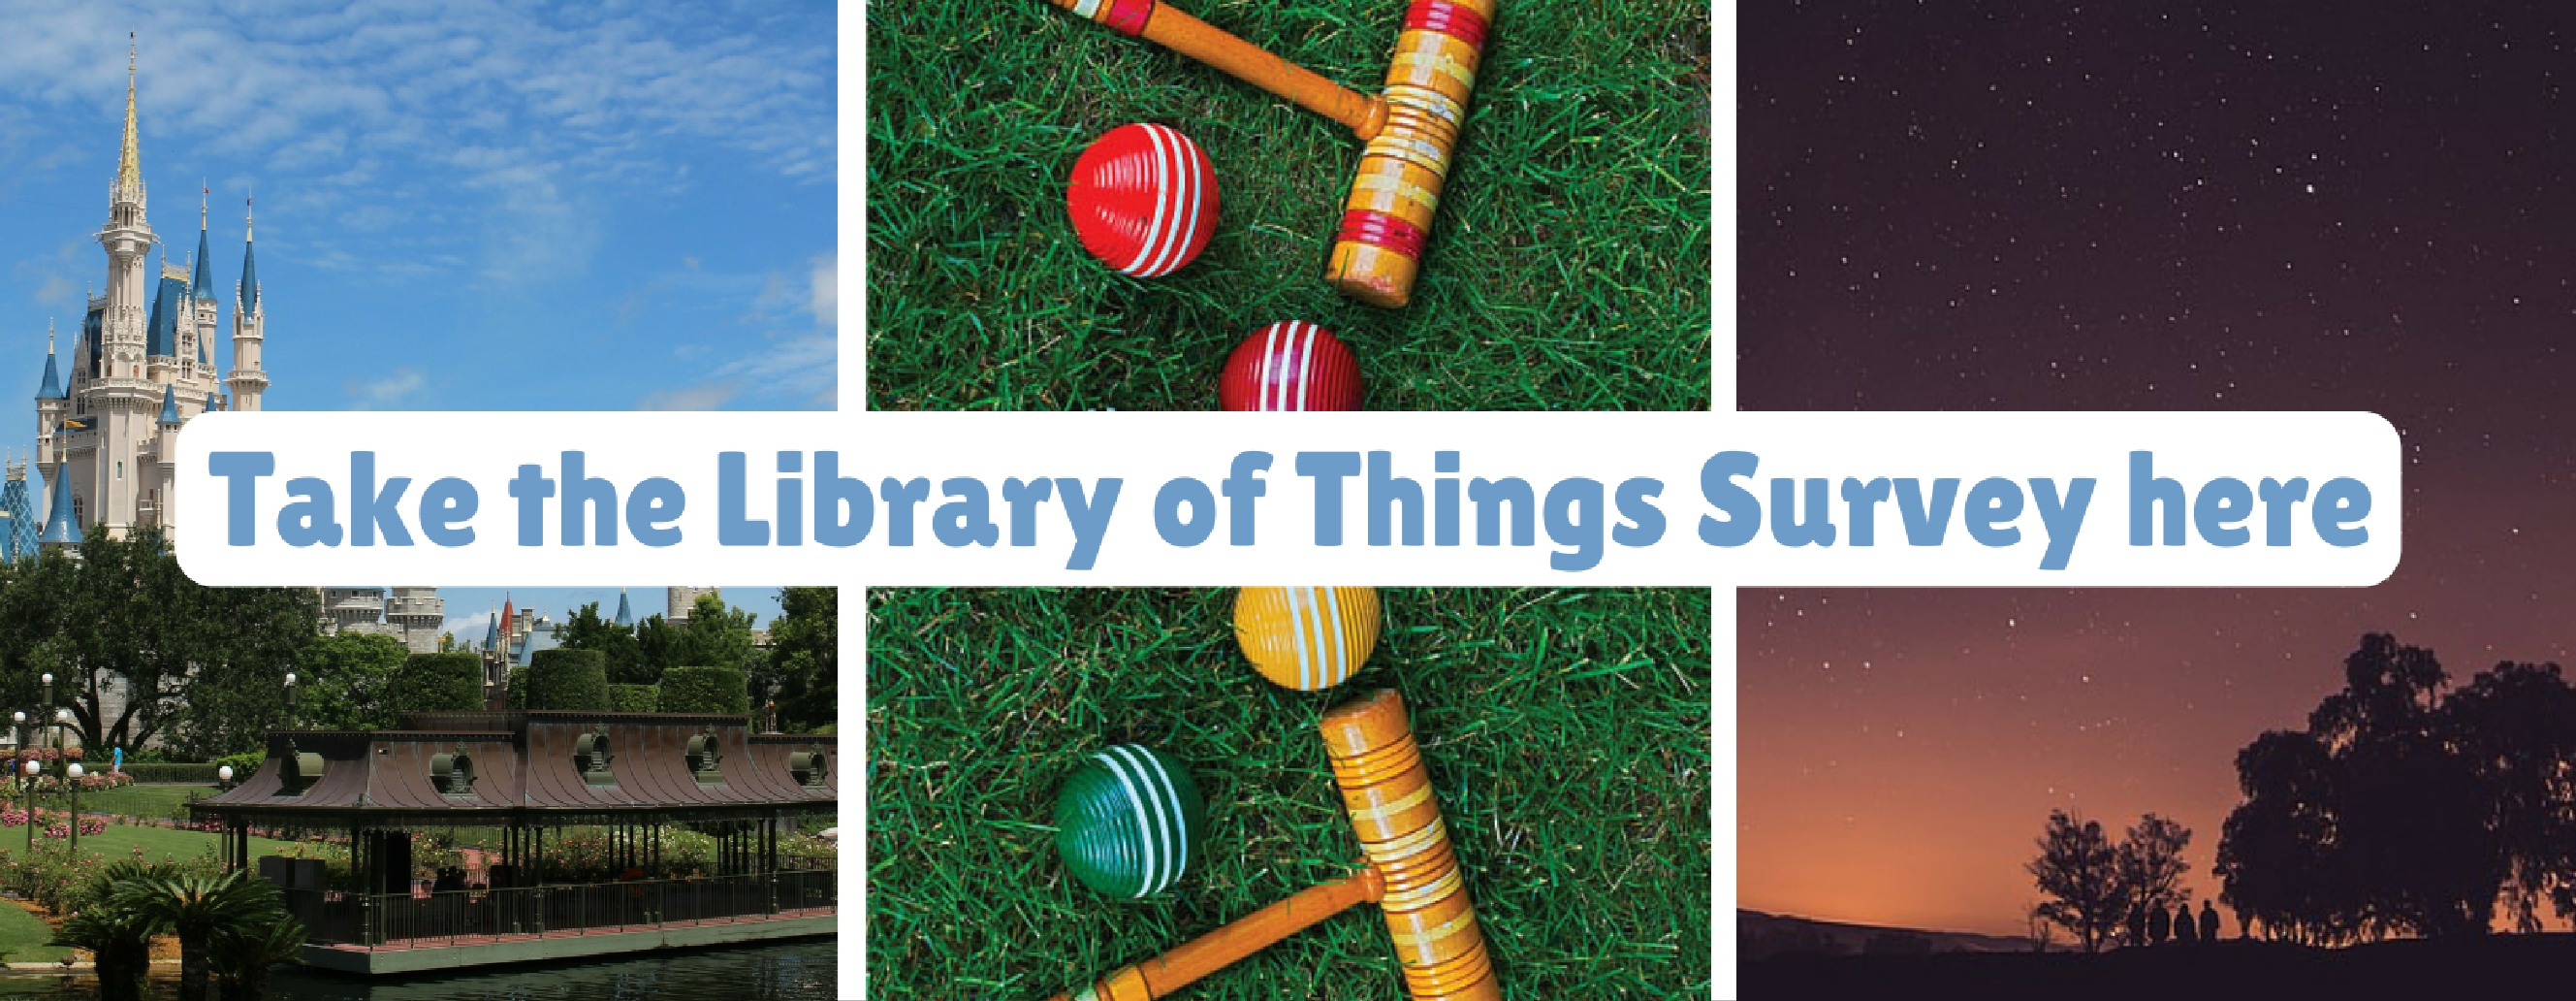 Library-of-Things-Survey-banner